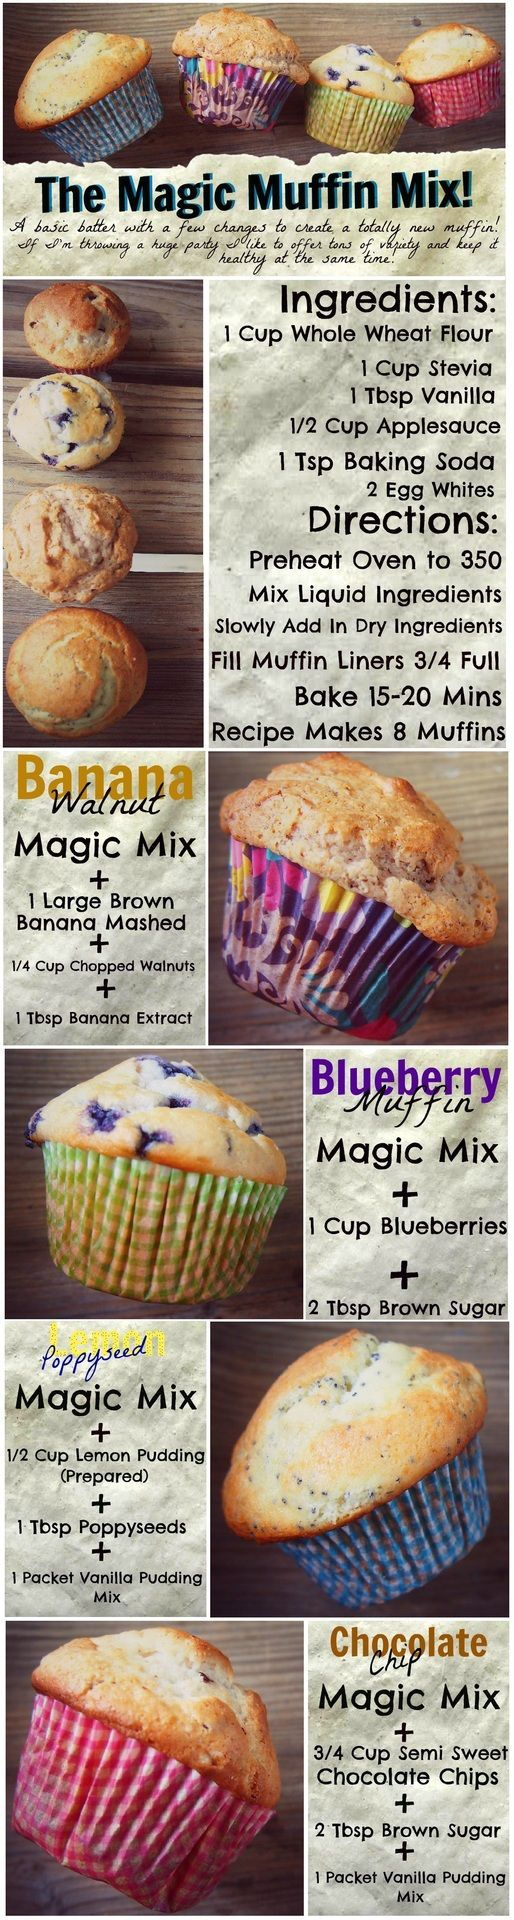 Magic Muffins! Same healthy basic recipe and then you can add in fruit, etc.